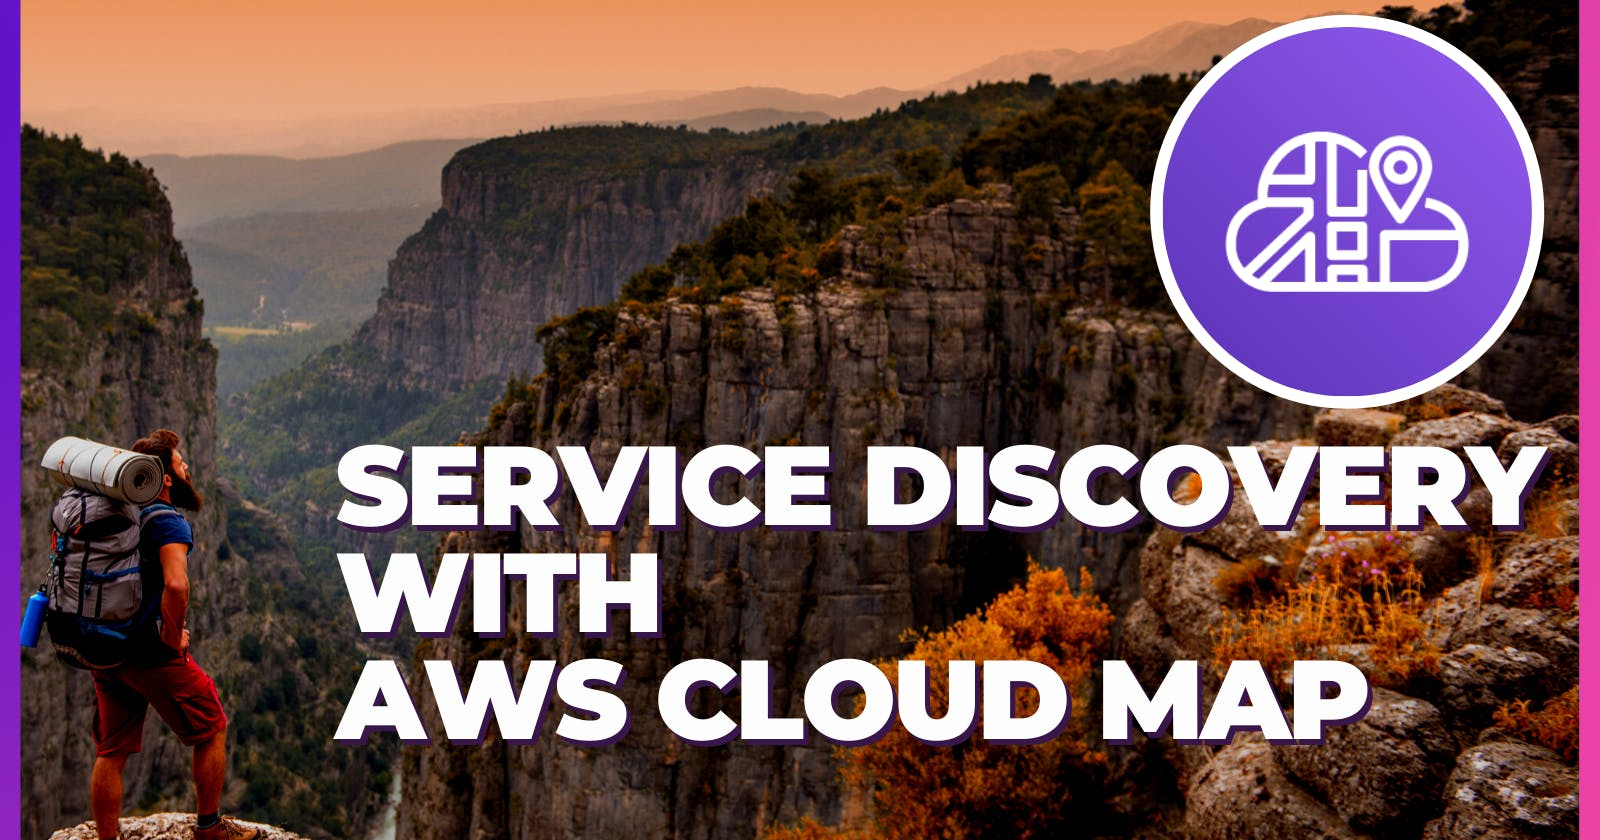 Service Discovery with AWS Cloud Map